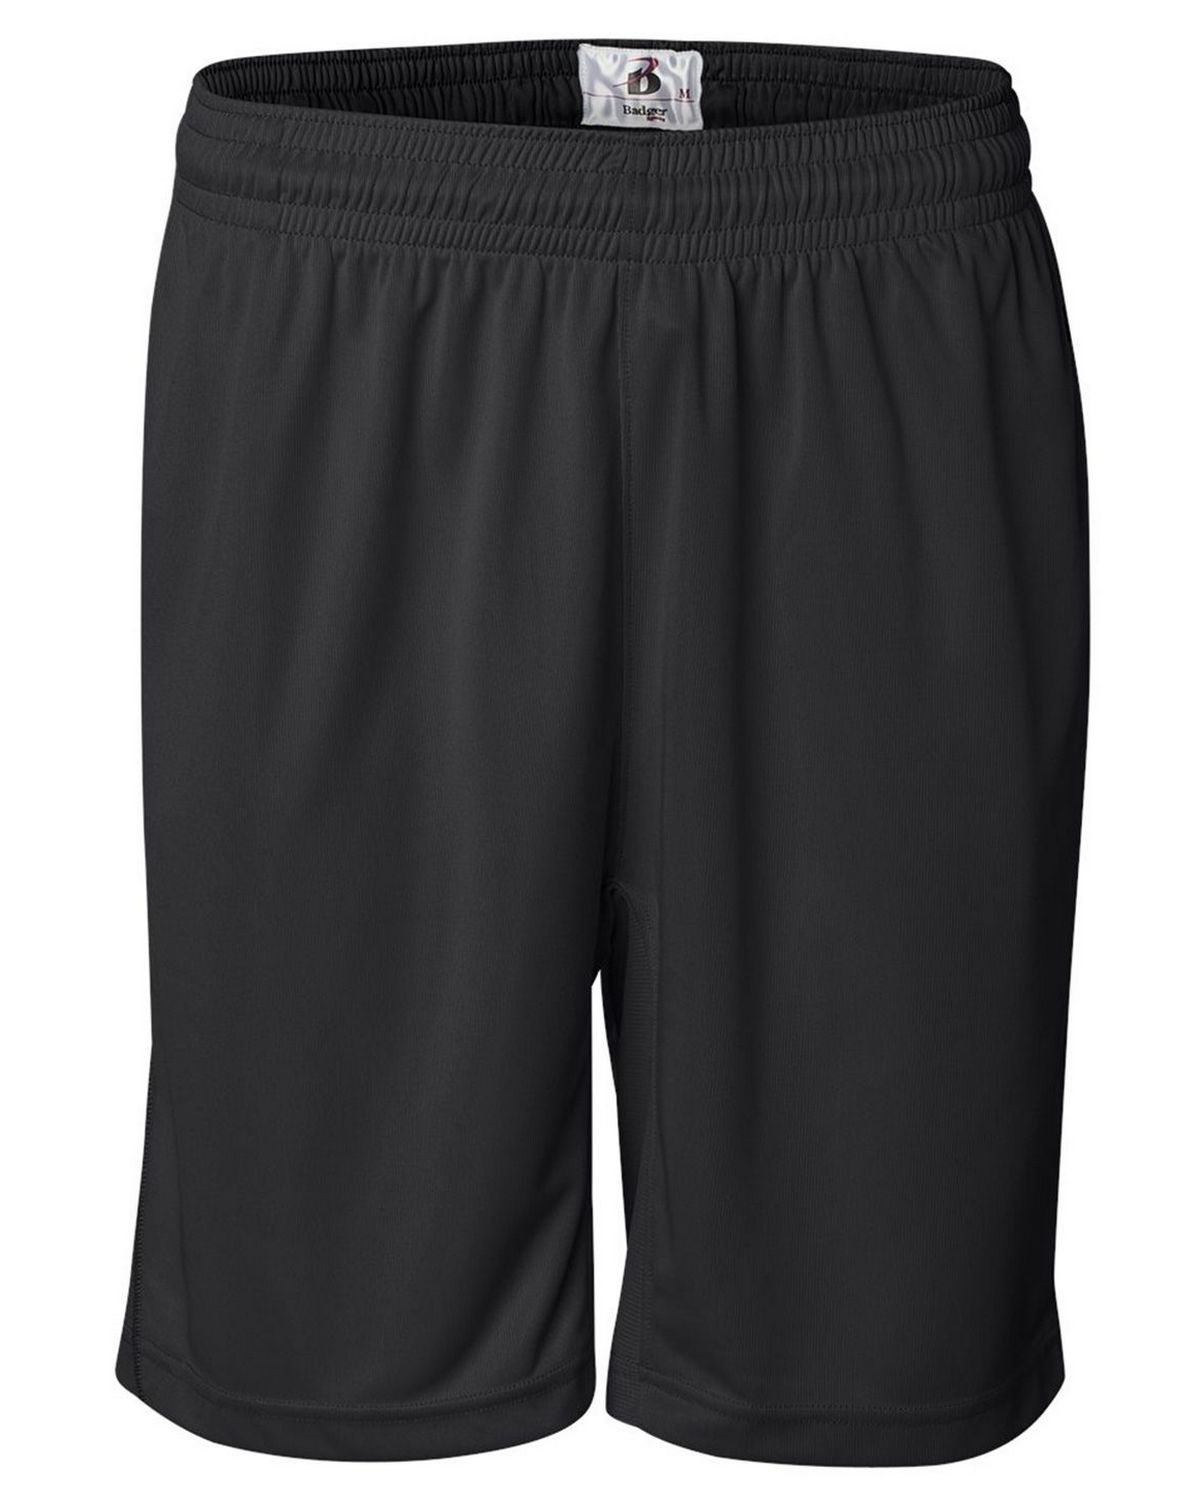 Badger 4110 Pocket Trainer Shorts White - Black - M 4110